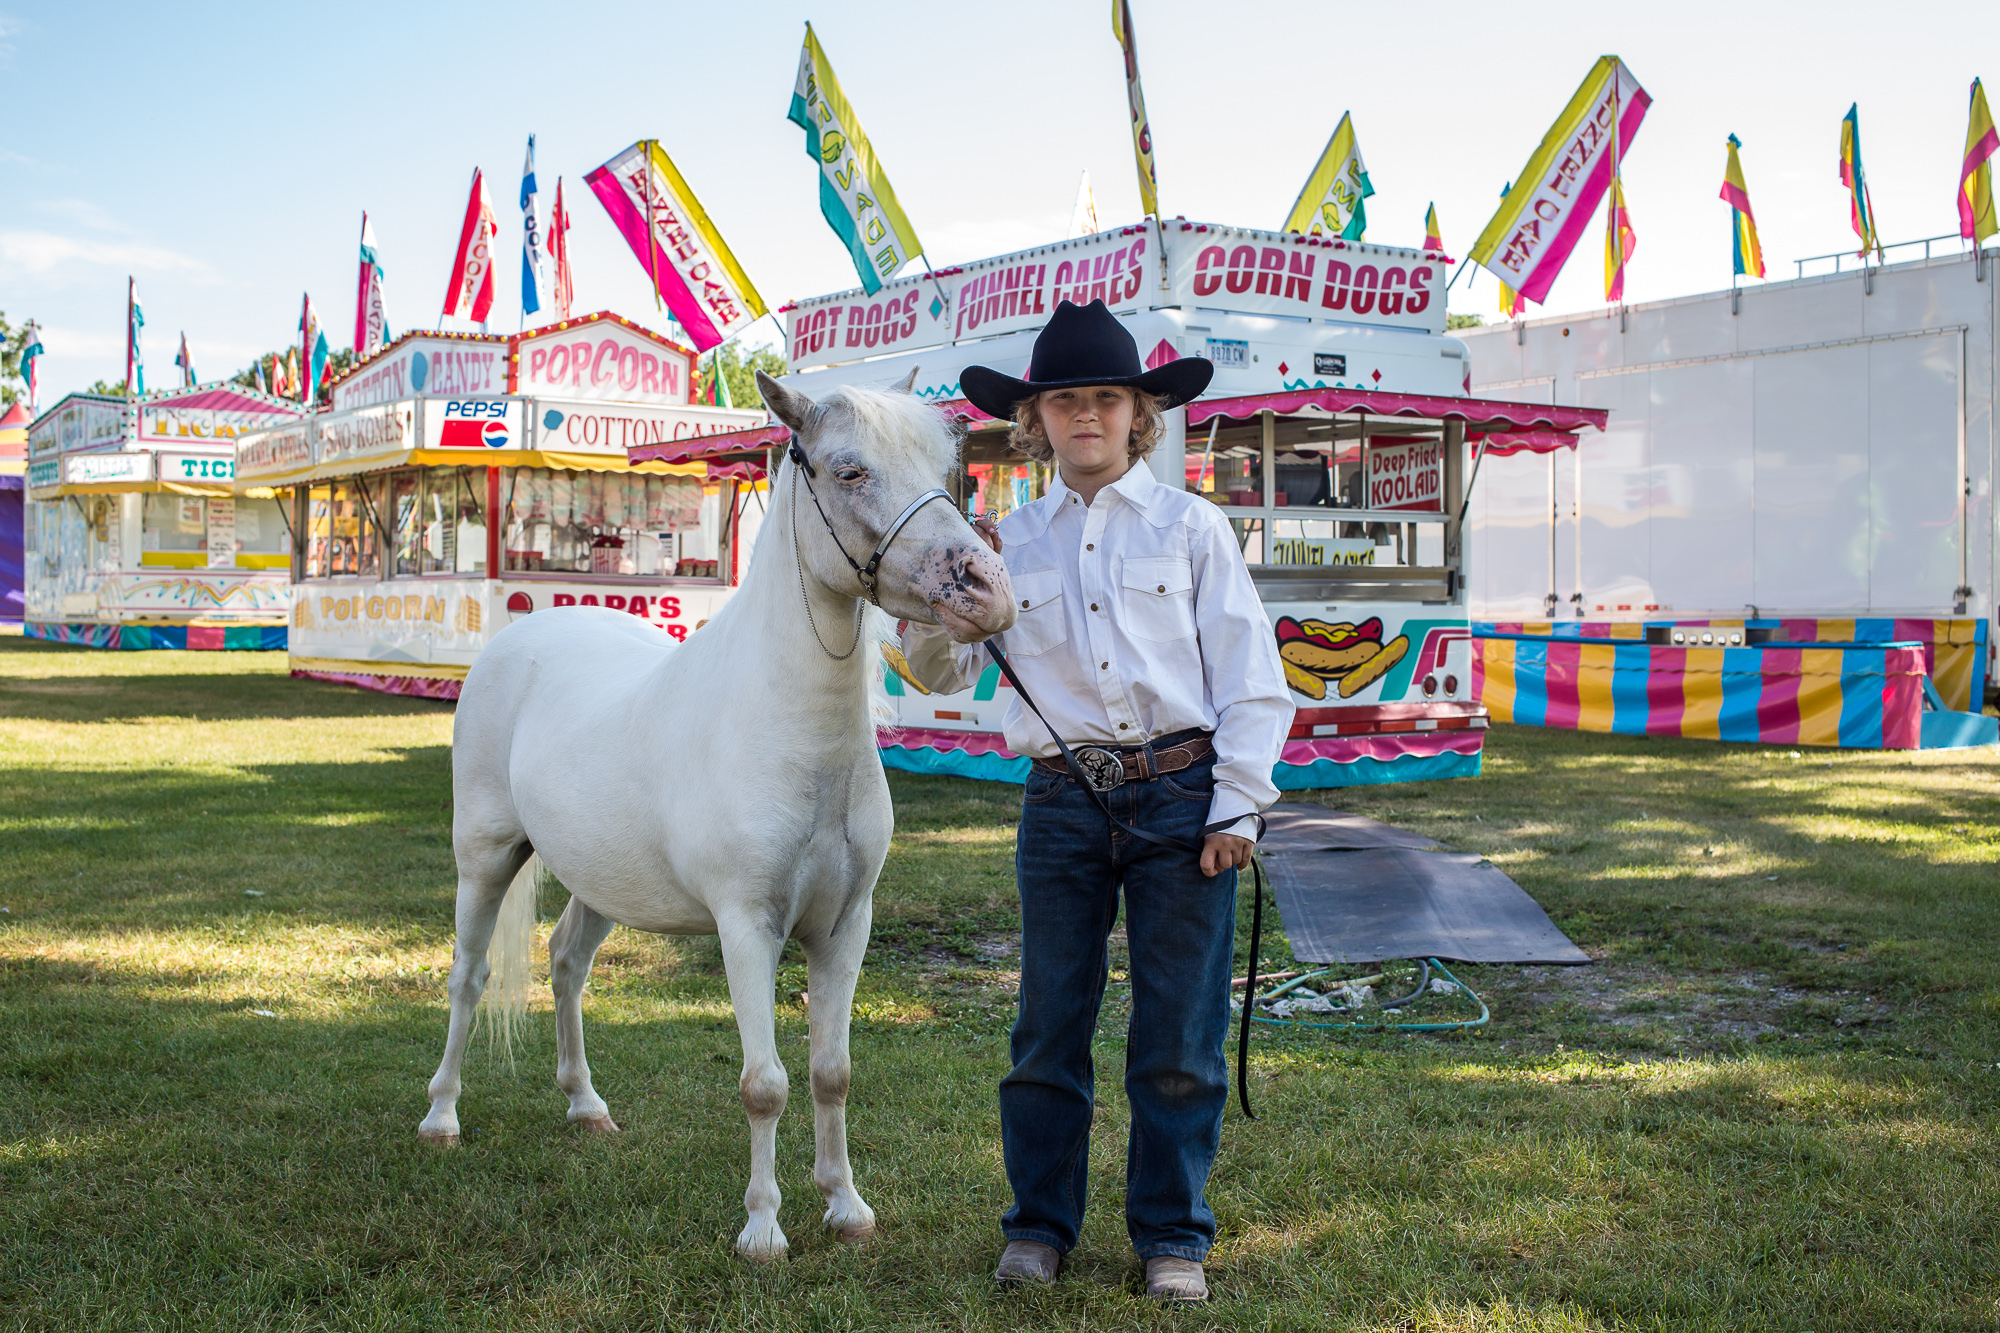 Gage Koster, 11, with Chase, a miniature Appaloosa, at the Hamilton County Fair on Wednesday, July 24, 2013 in Webster City, IA.